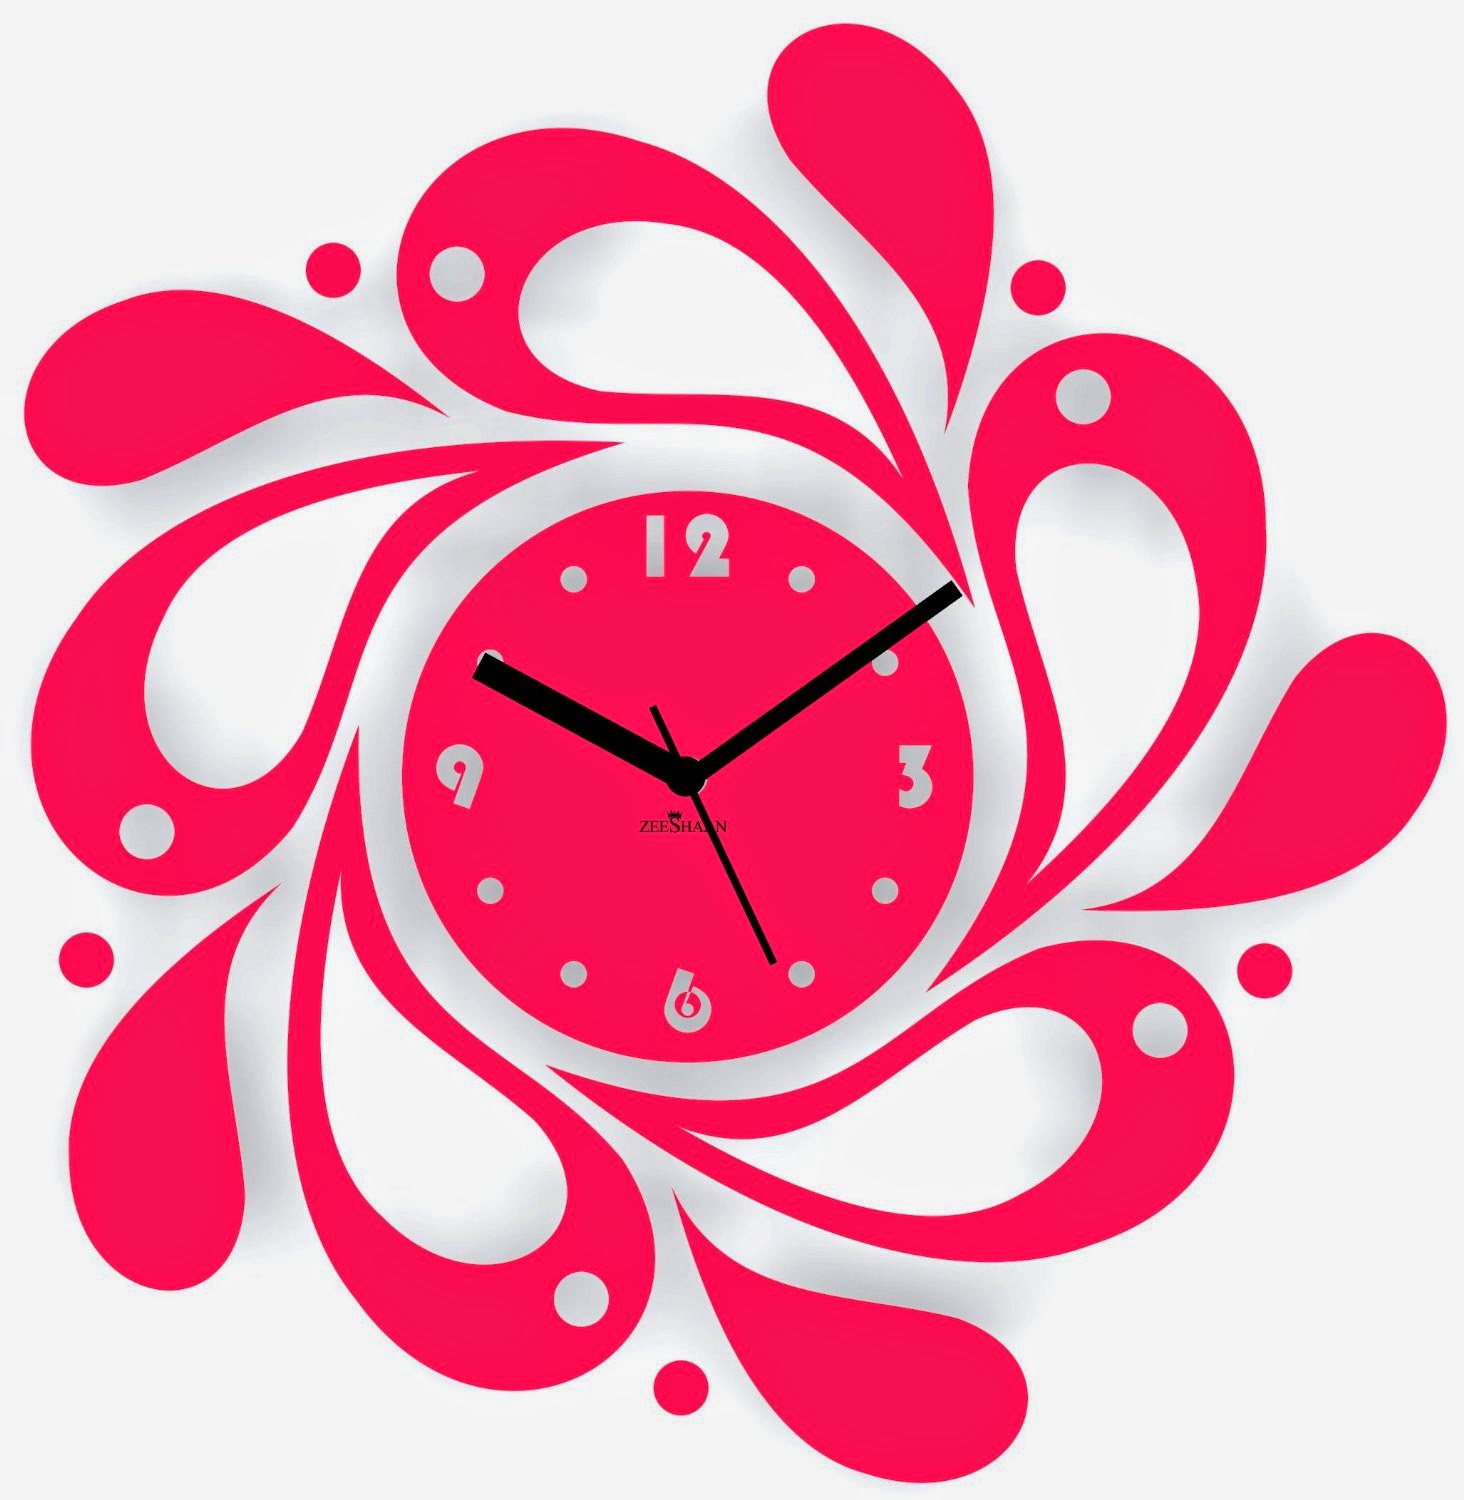 designer wall clock pink amazon online shopping deals coupons for online shopping lovers